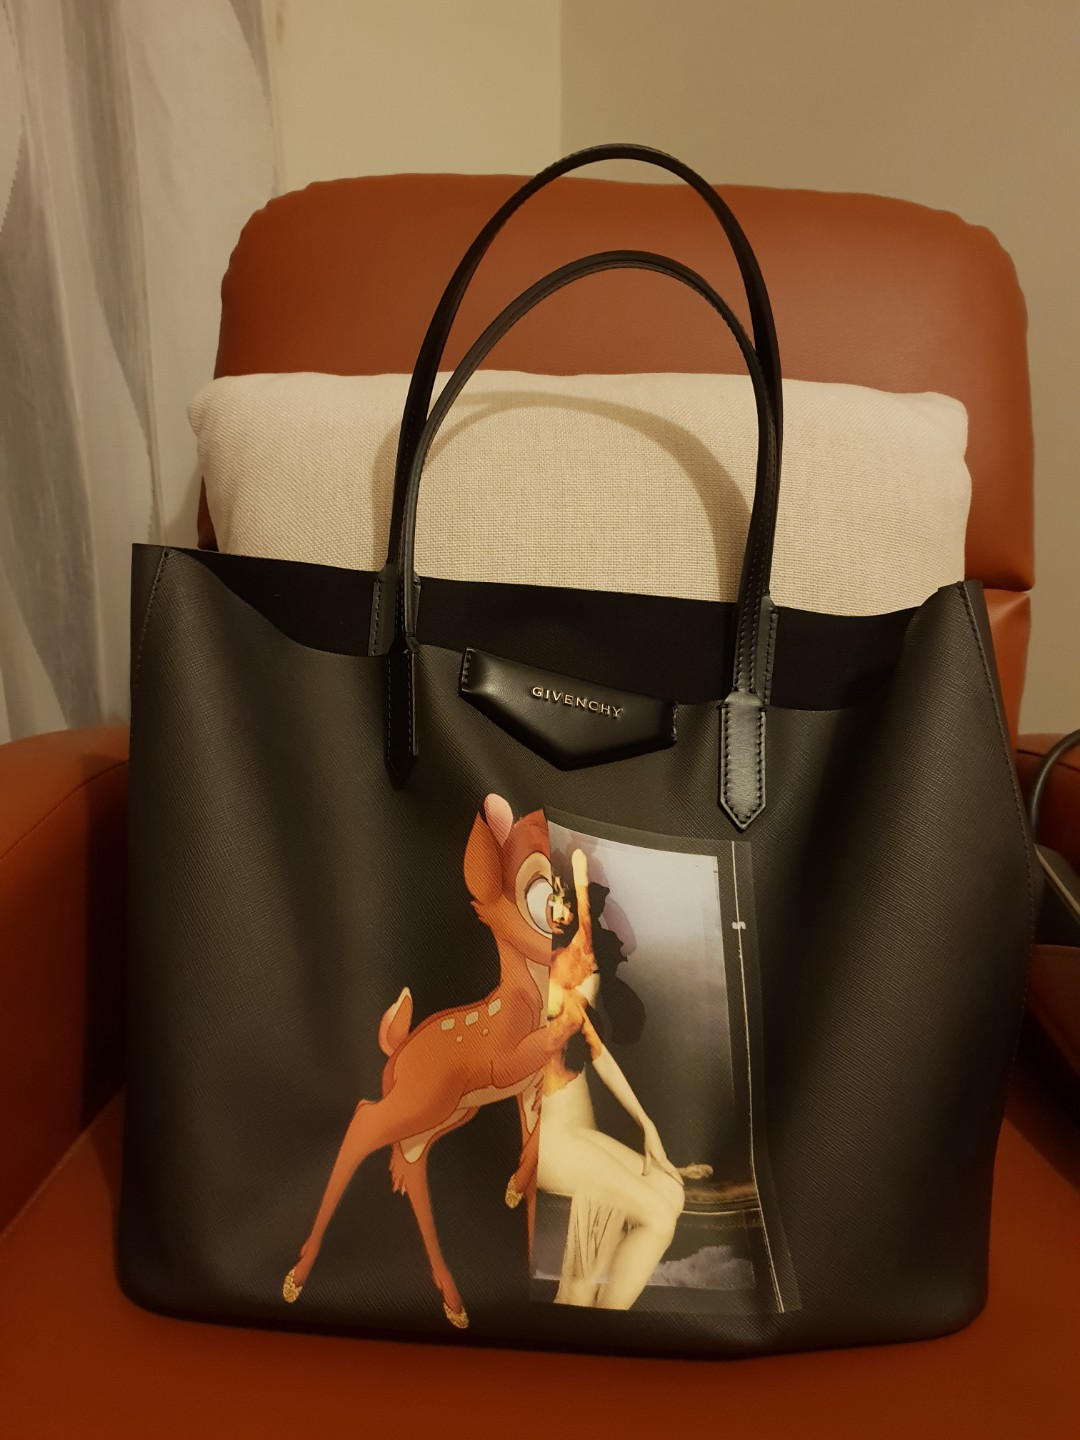 7b95595431 Givenchy Antigona Small Leather Shopping Tote